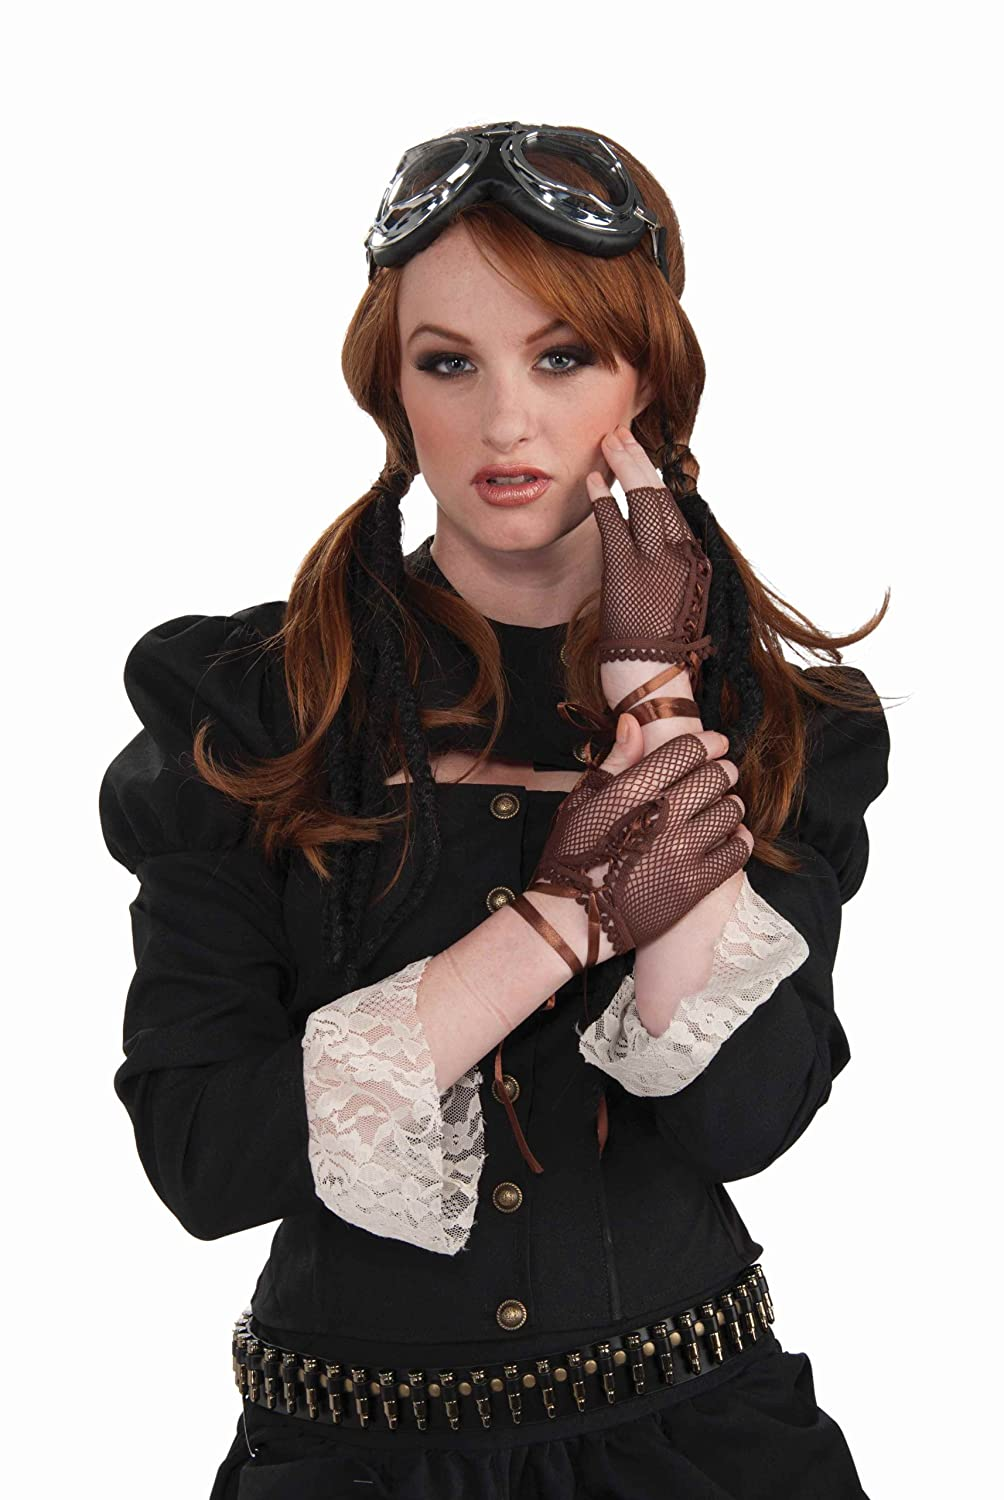 Vintage Style Gloves- Long, Wrist, Evening, Day, Leather, Lace  Steampunk Fingerless Gloves Costume Accessory $5.89 AT vintagedancer.com